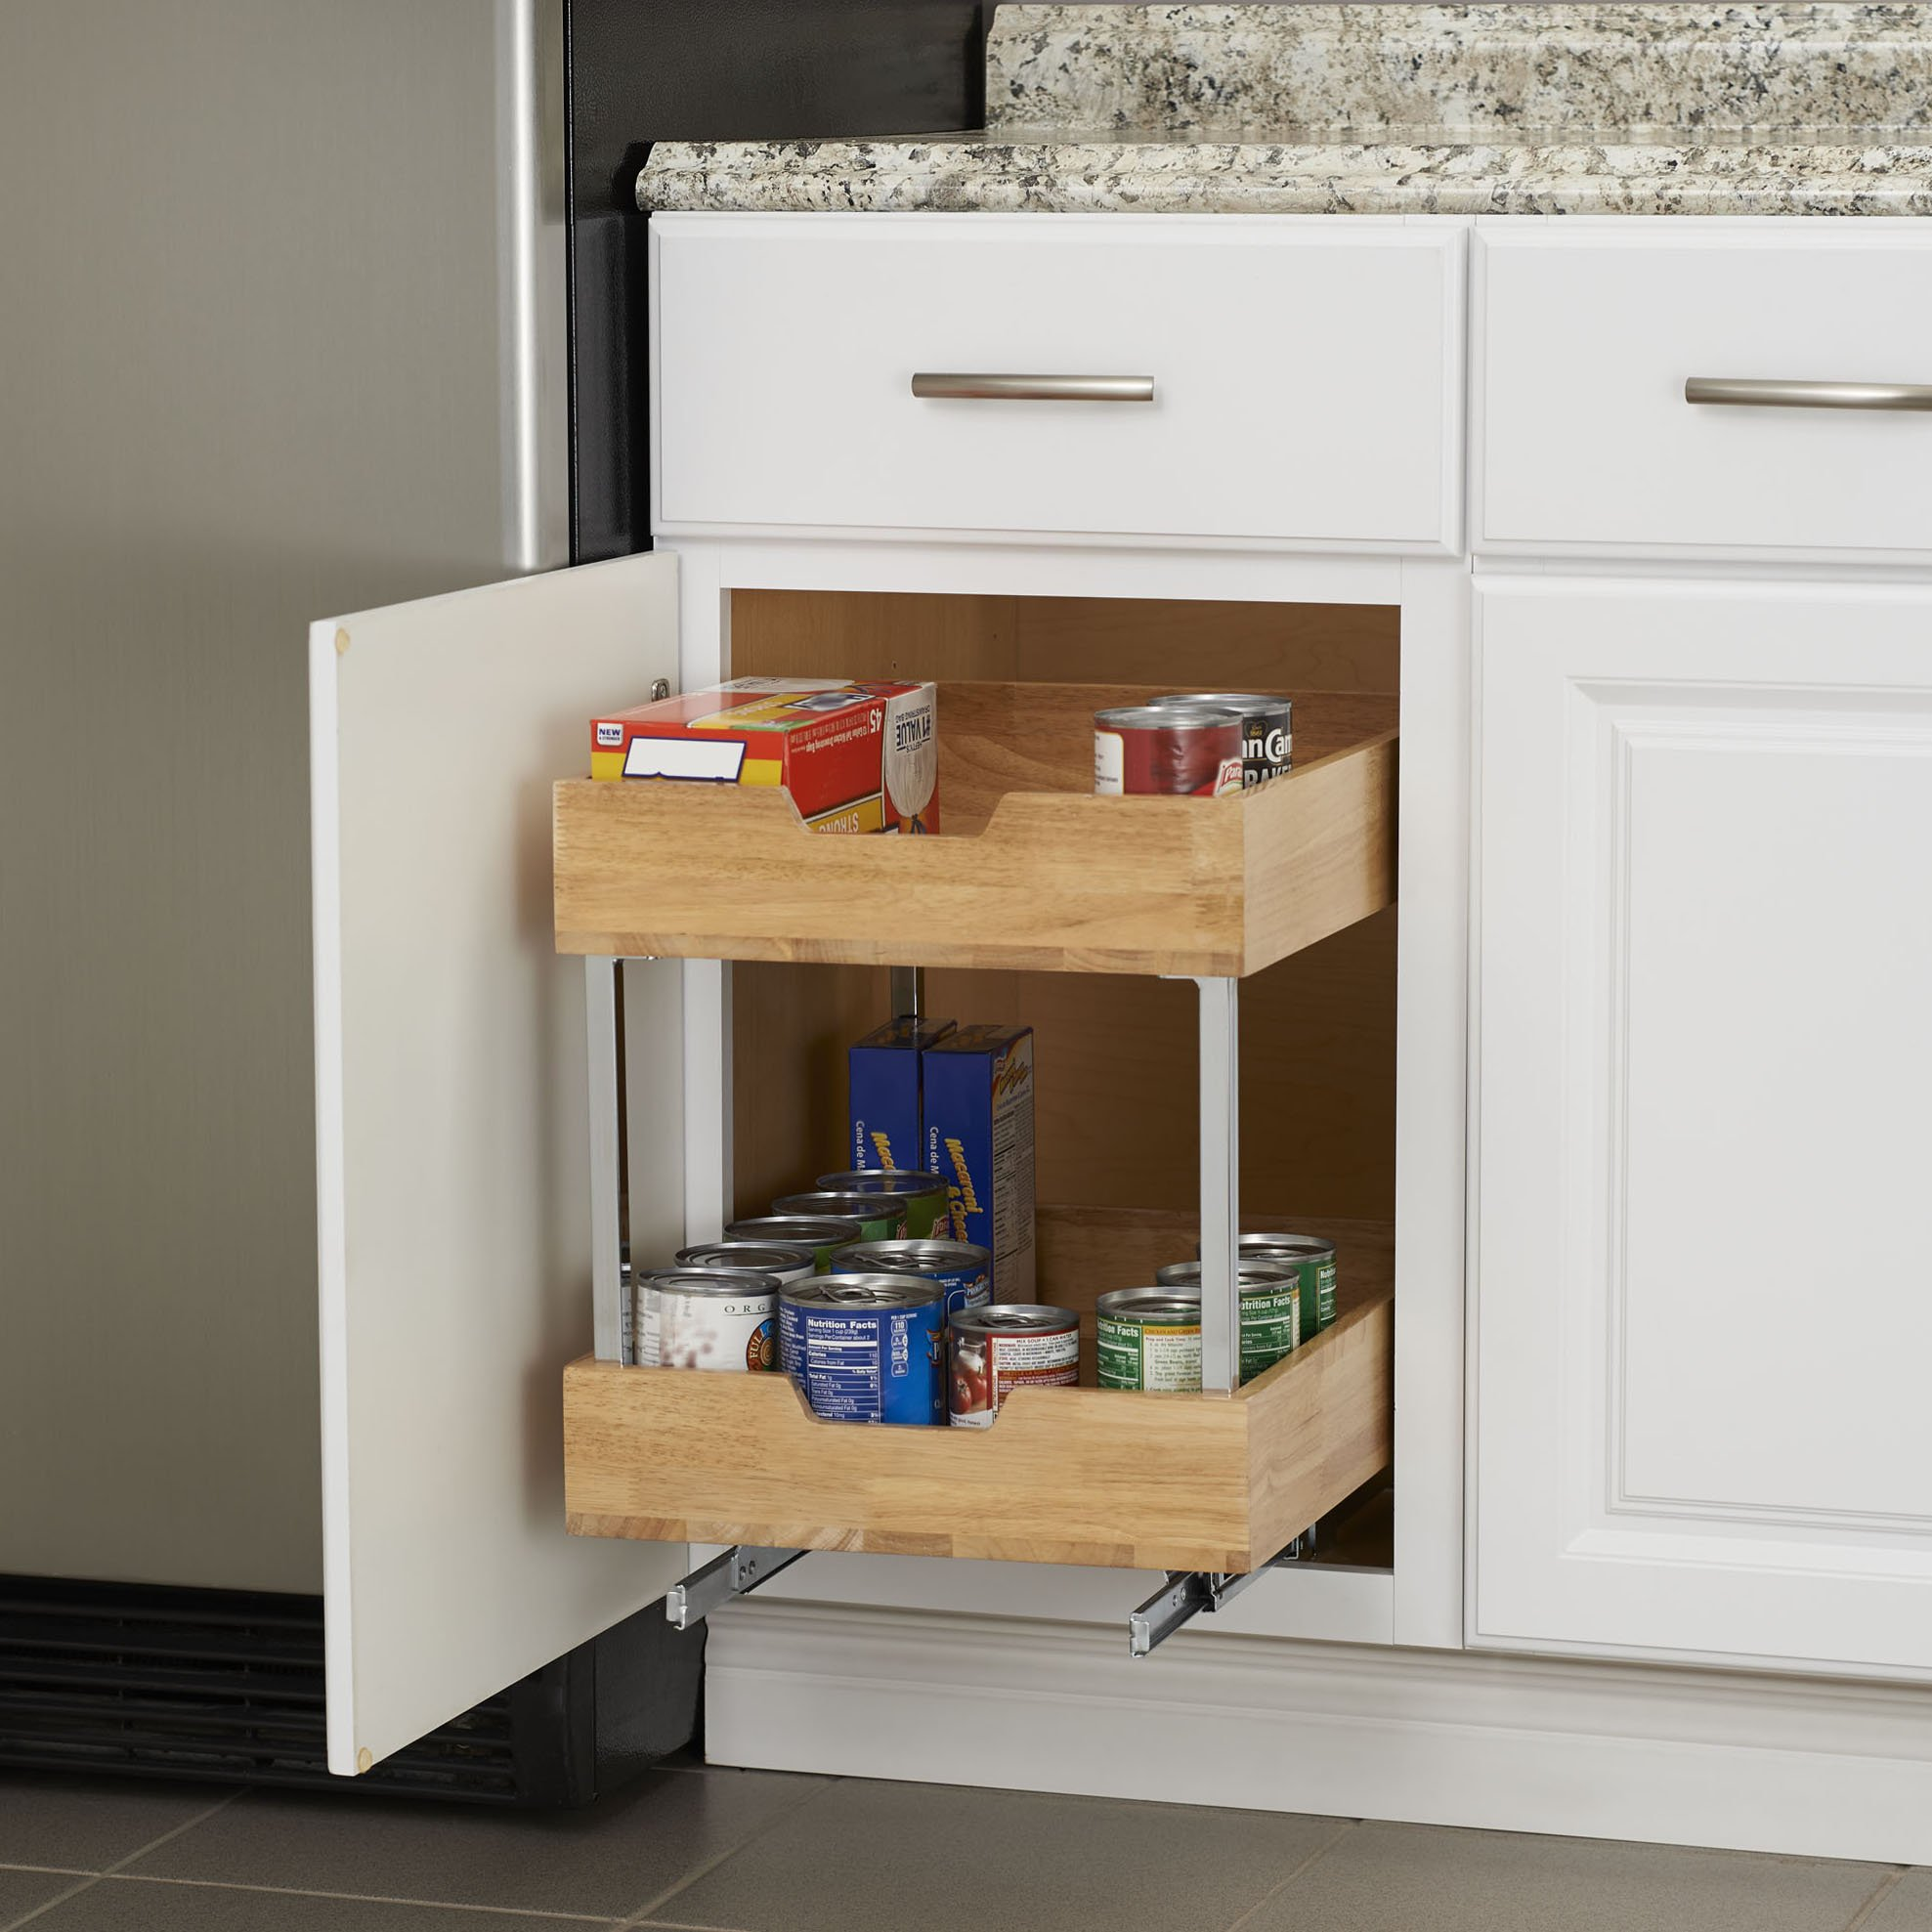 Household Essentials 24521-1 Glidez 2-Tier Sliding Organizer - Pull Out Cabinet Shelf - Wood - 14.5 Inches Wide by Household Essentials (Image #6)